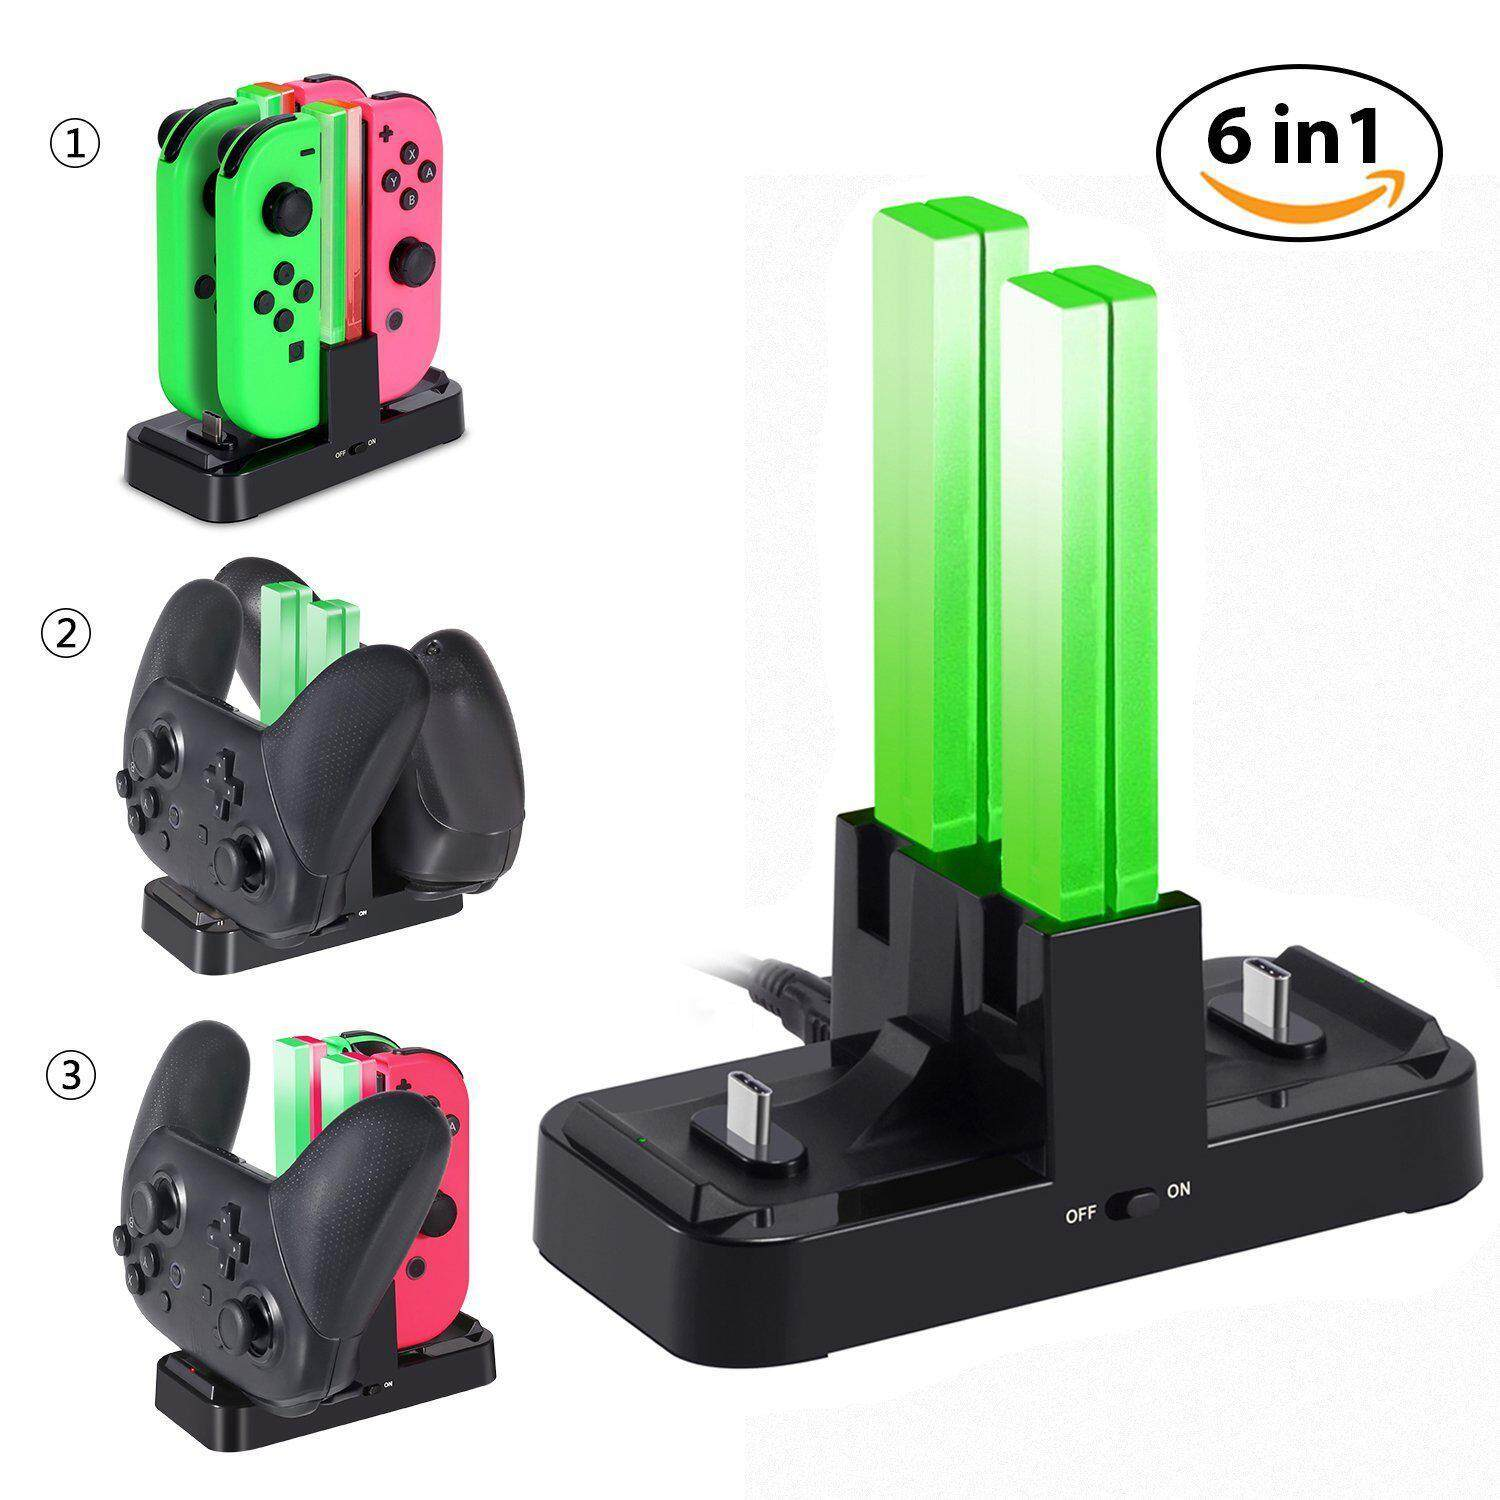 niceEshop Nintendo Switch Joy-Con And Pro Controller Charging Dock KINGTOP 6 In 1 Joy-Con Pro Controller Charger Station With Individual LEDs Indication